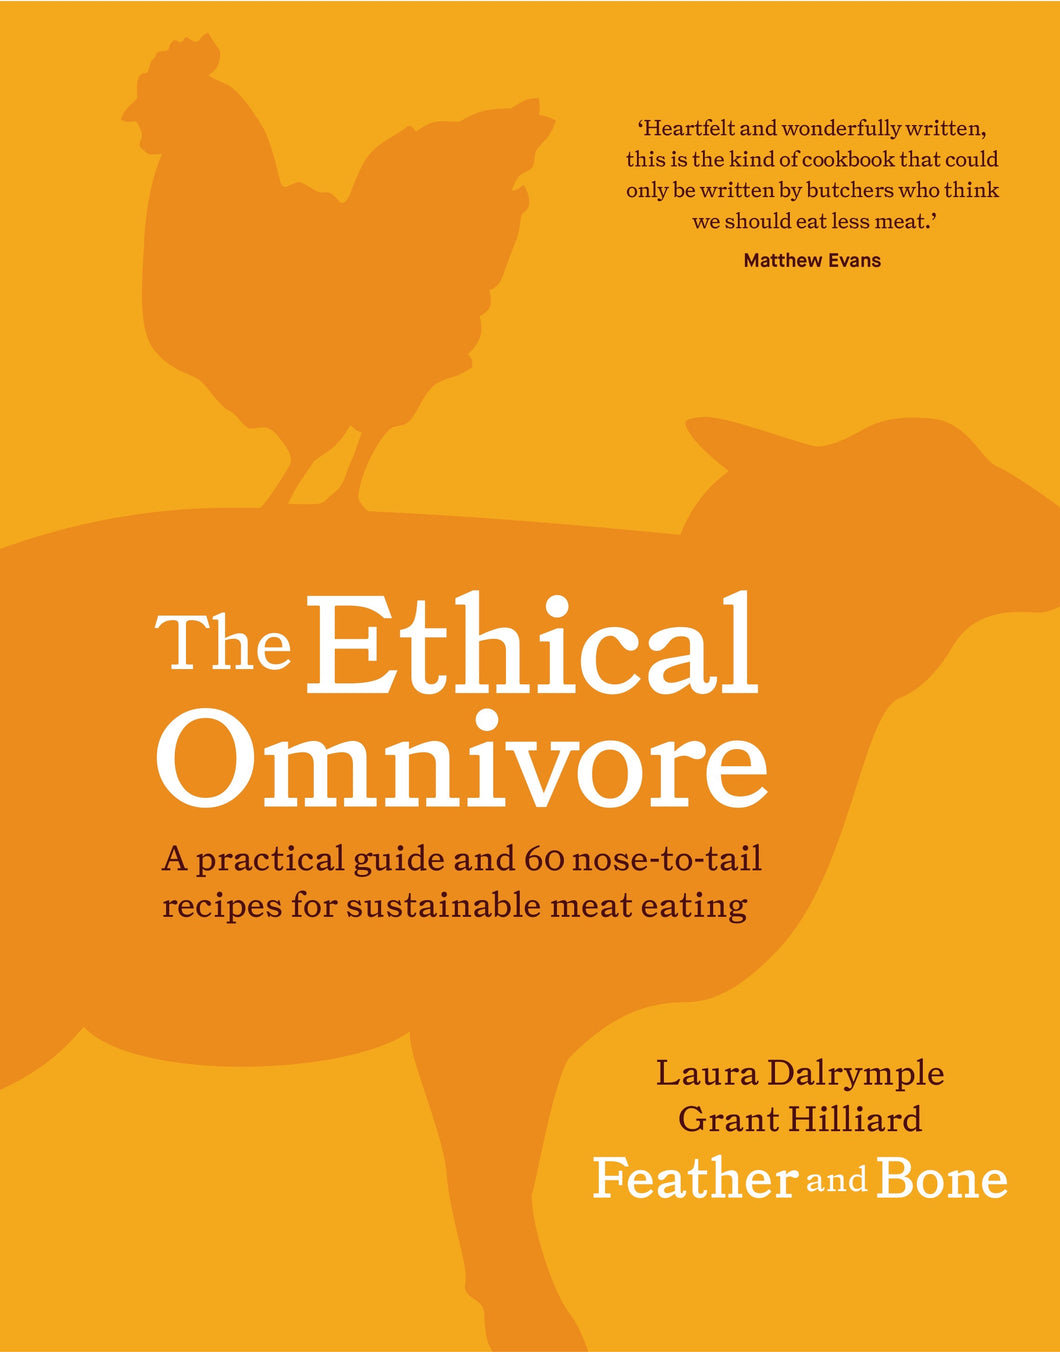 The Ethical Omnivore by Laura Dalrymple and Grant Hilliard